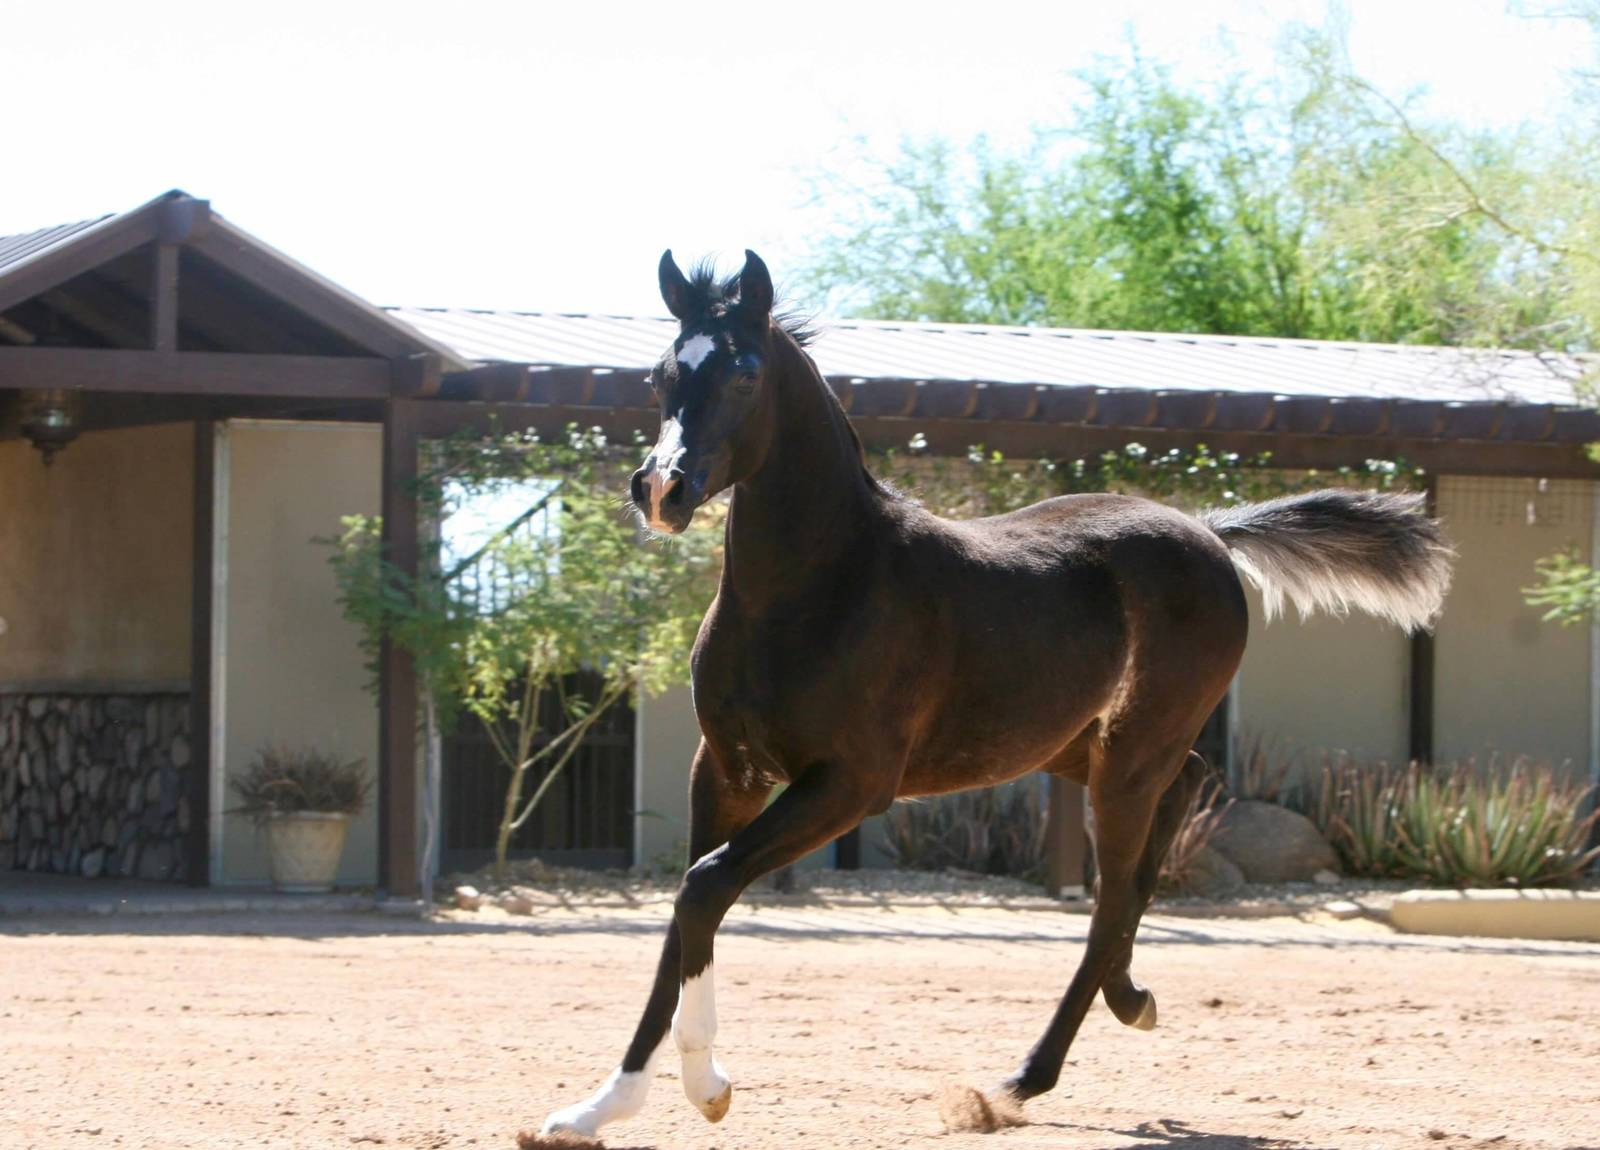 Azpin Regal - black SE colt - age 4 months